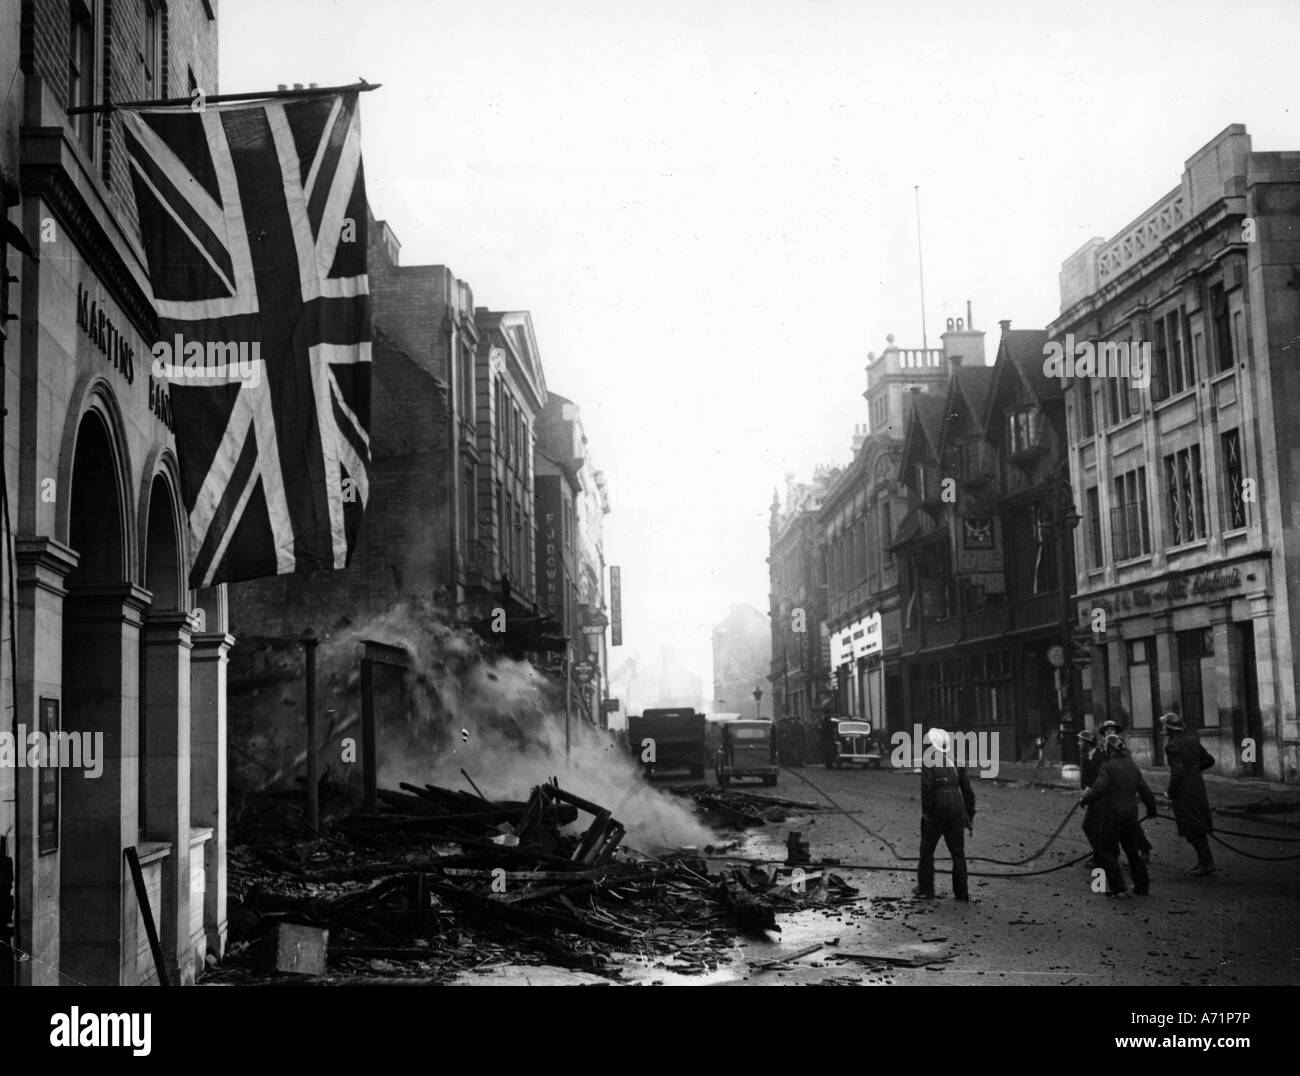 England after WW2: Some information?